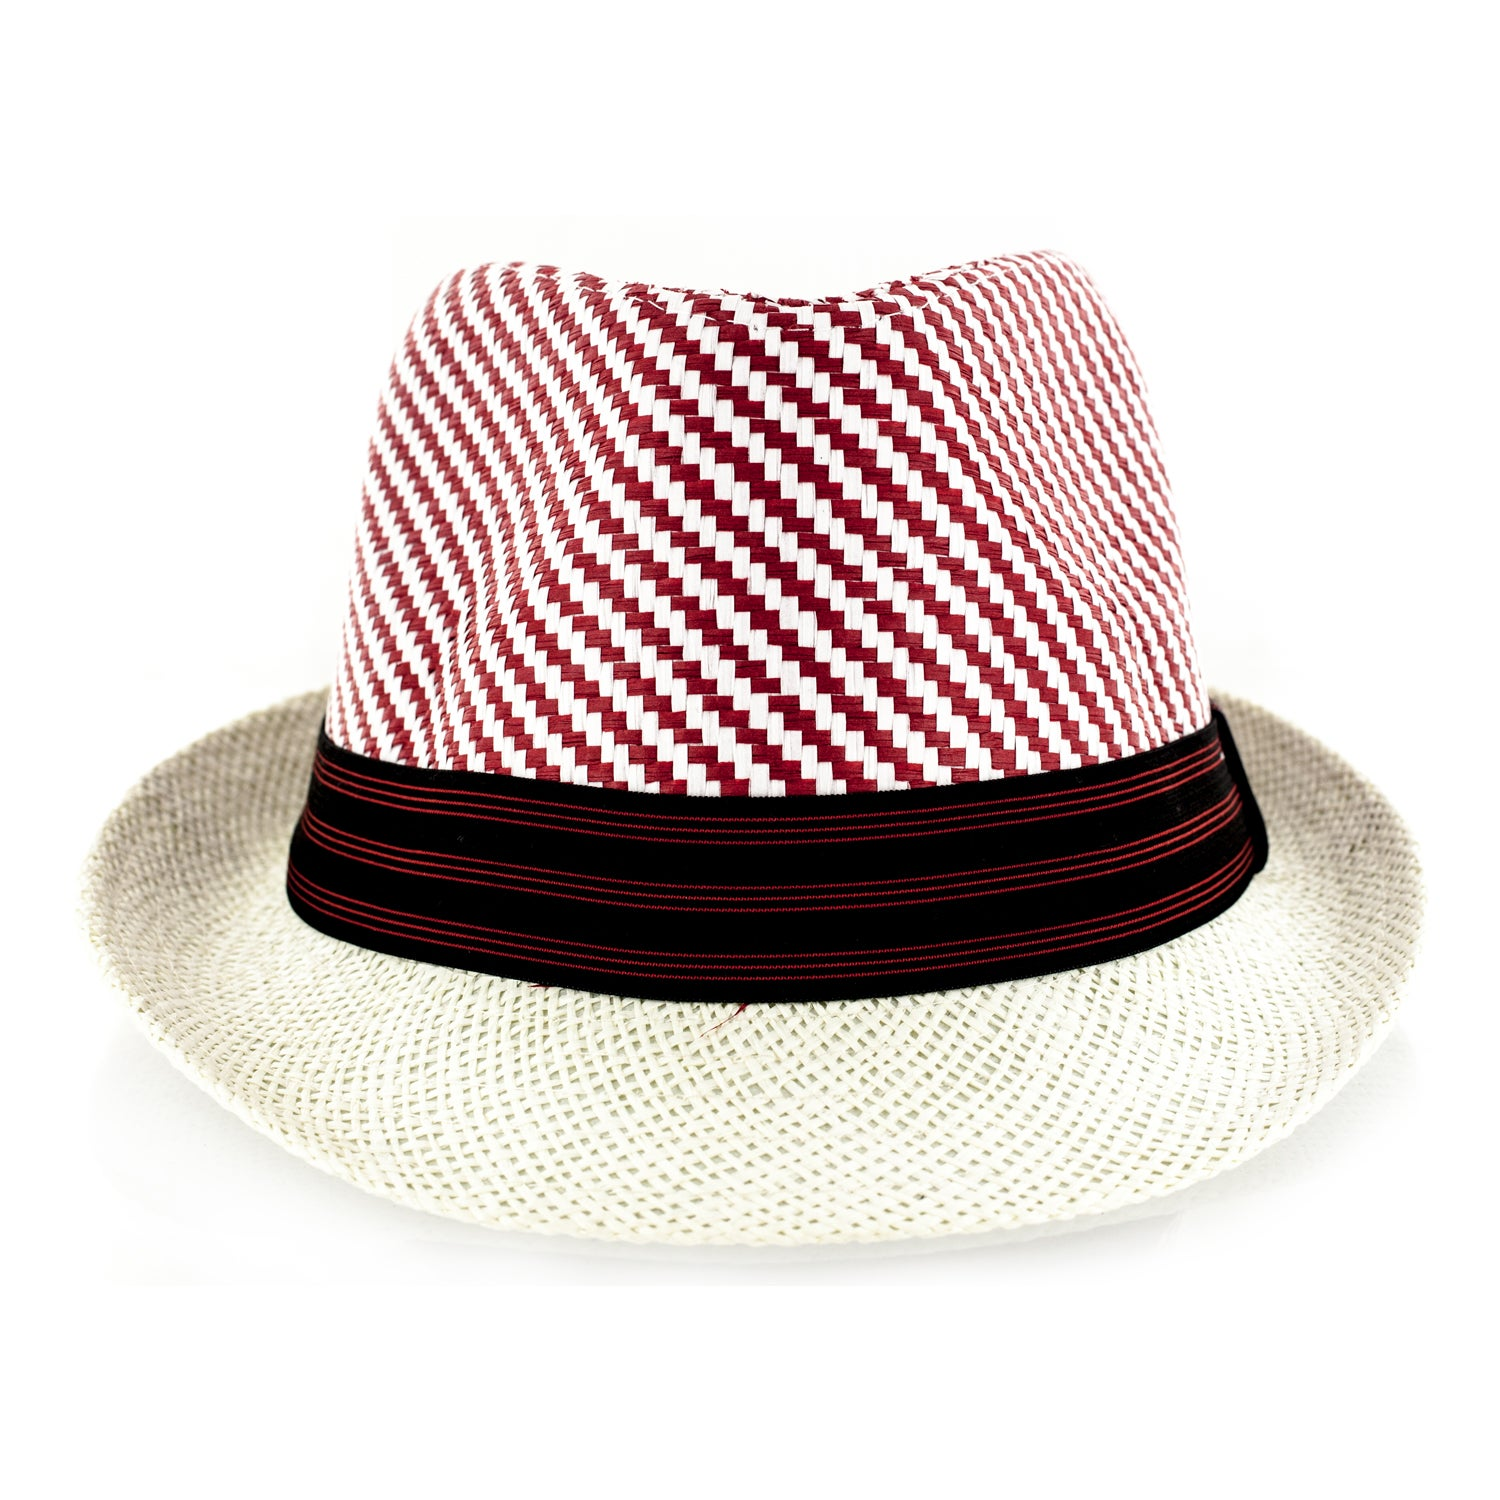 Faddism Straw-weave Fedora Hat with Black/Red Trim